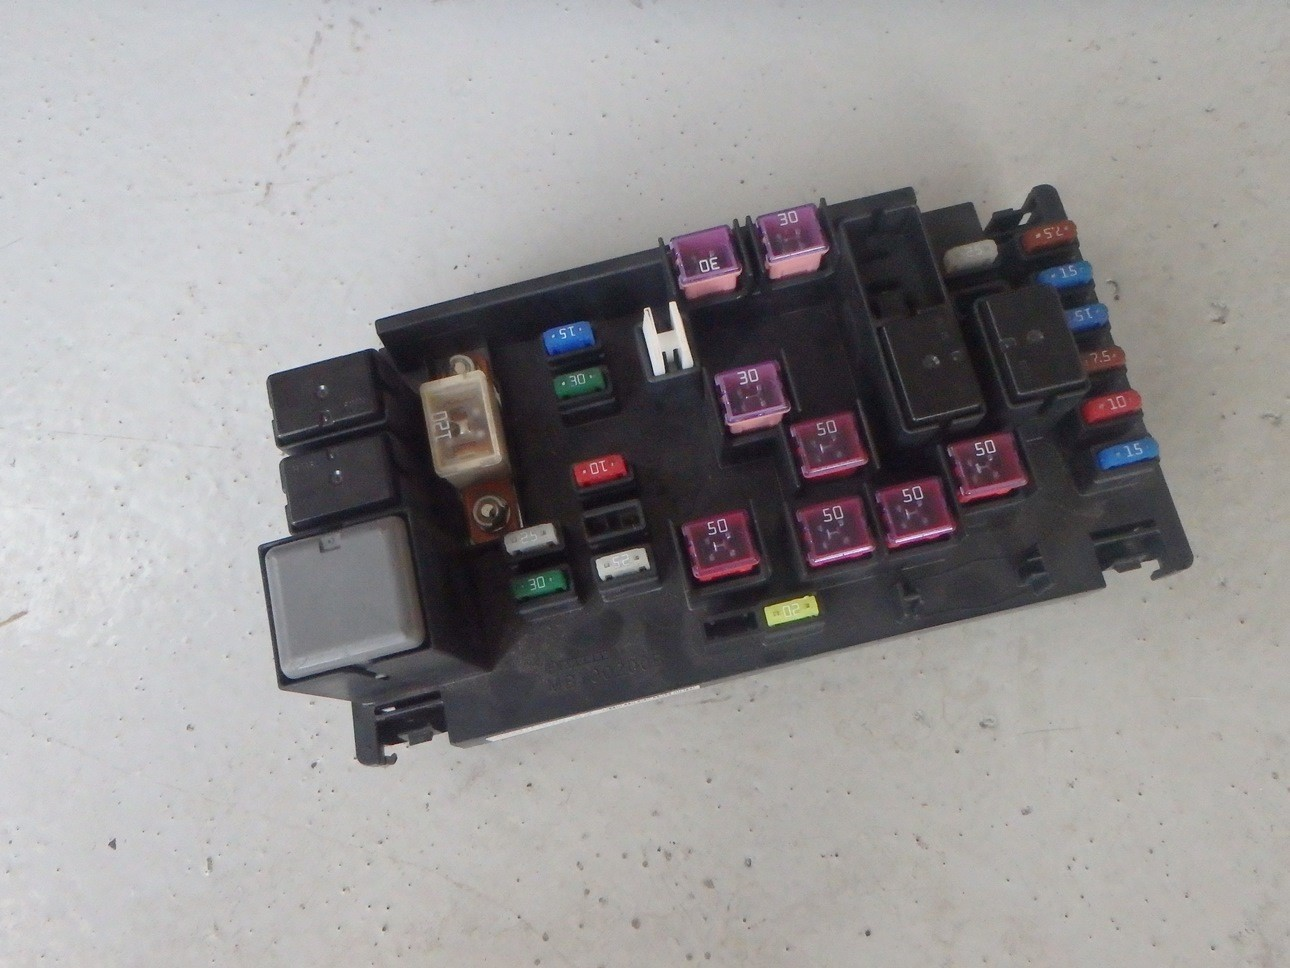 Subaru Impreza Wrx Grb Sti 2008 Engine Bay Fuse Panel Box 82241fg000